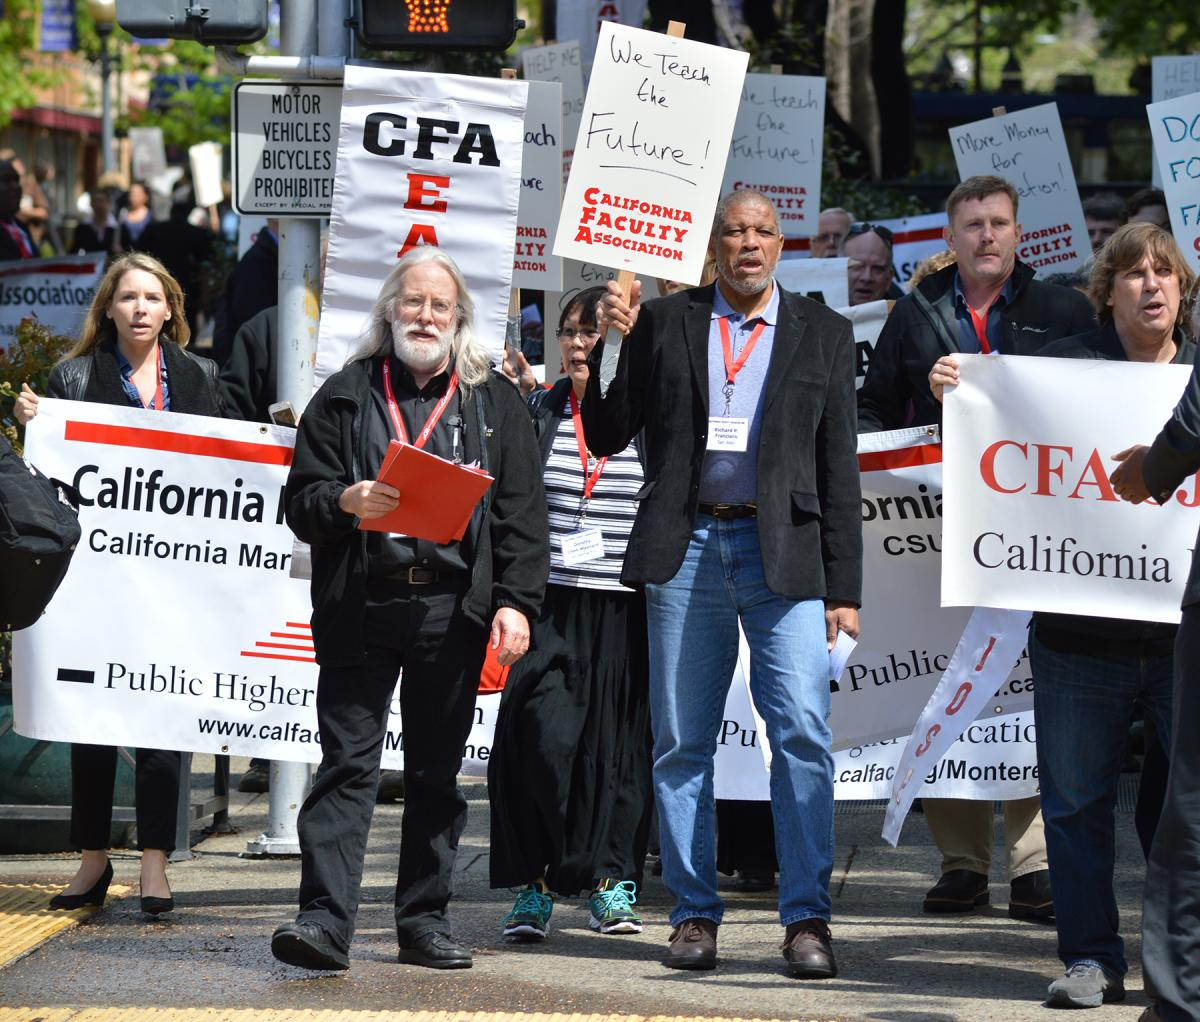 """""""CFA activists march toward the State Capitol on April 7, 2015. Source: Calfac.org"""""""